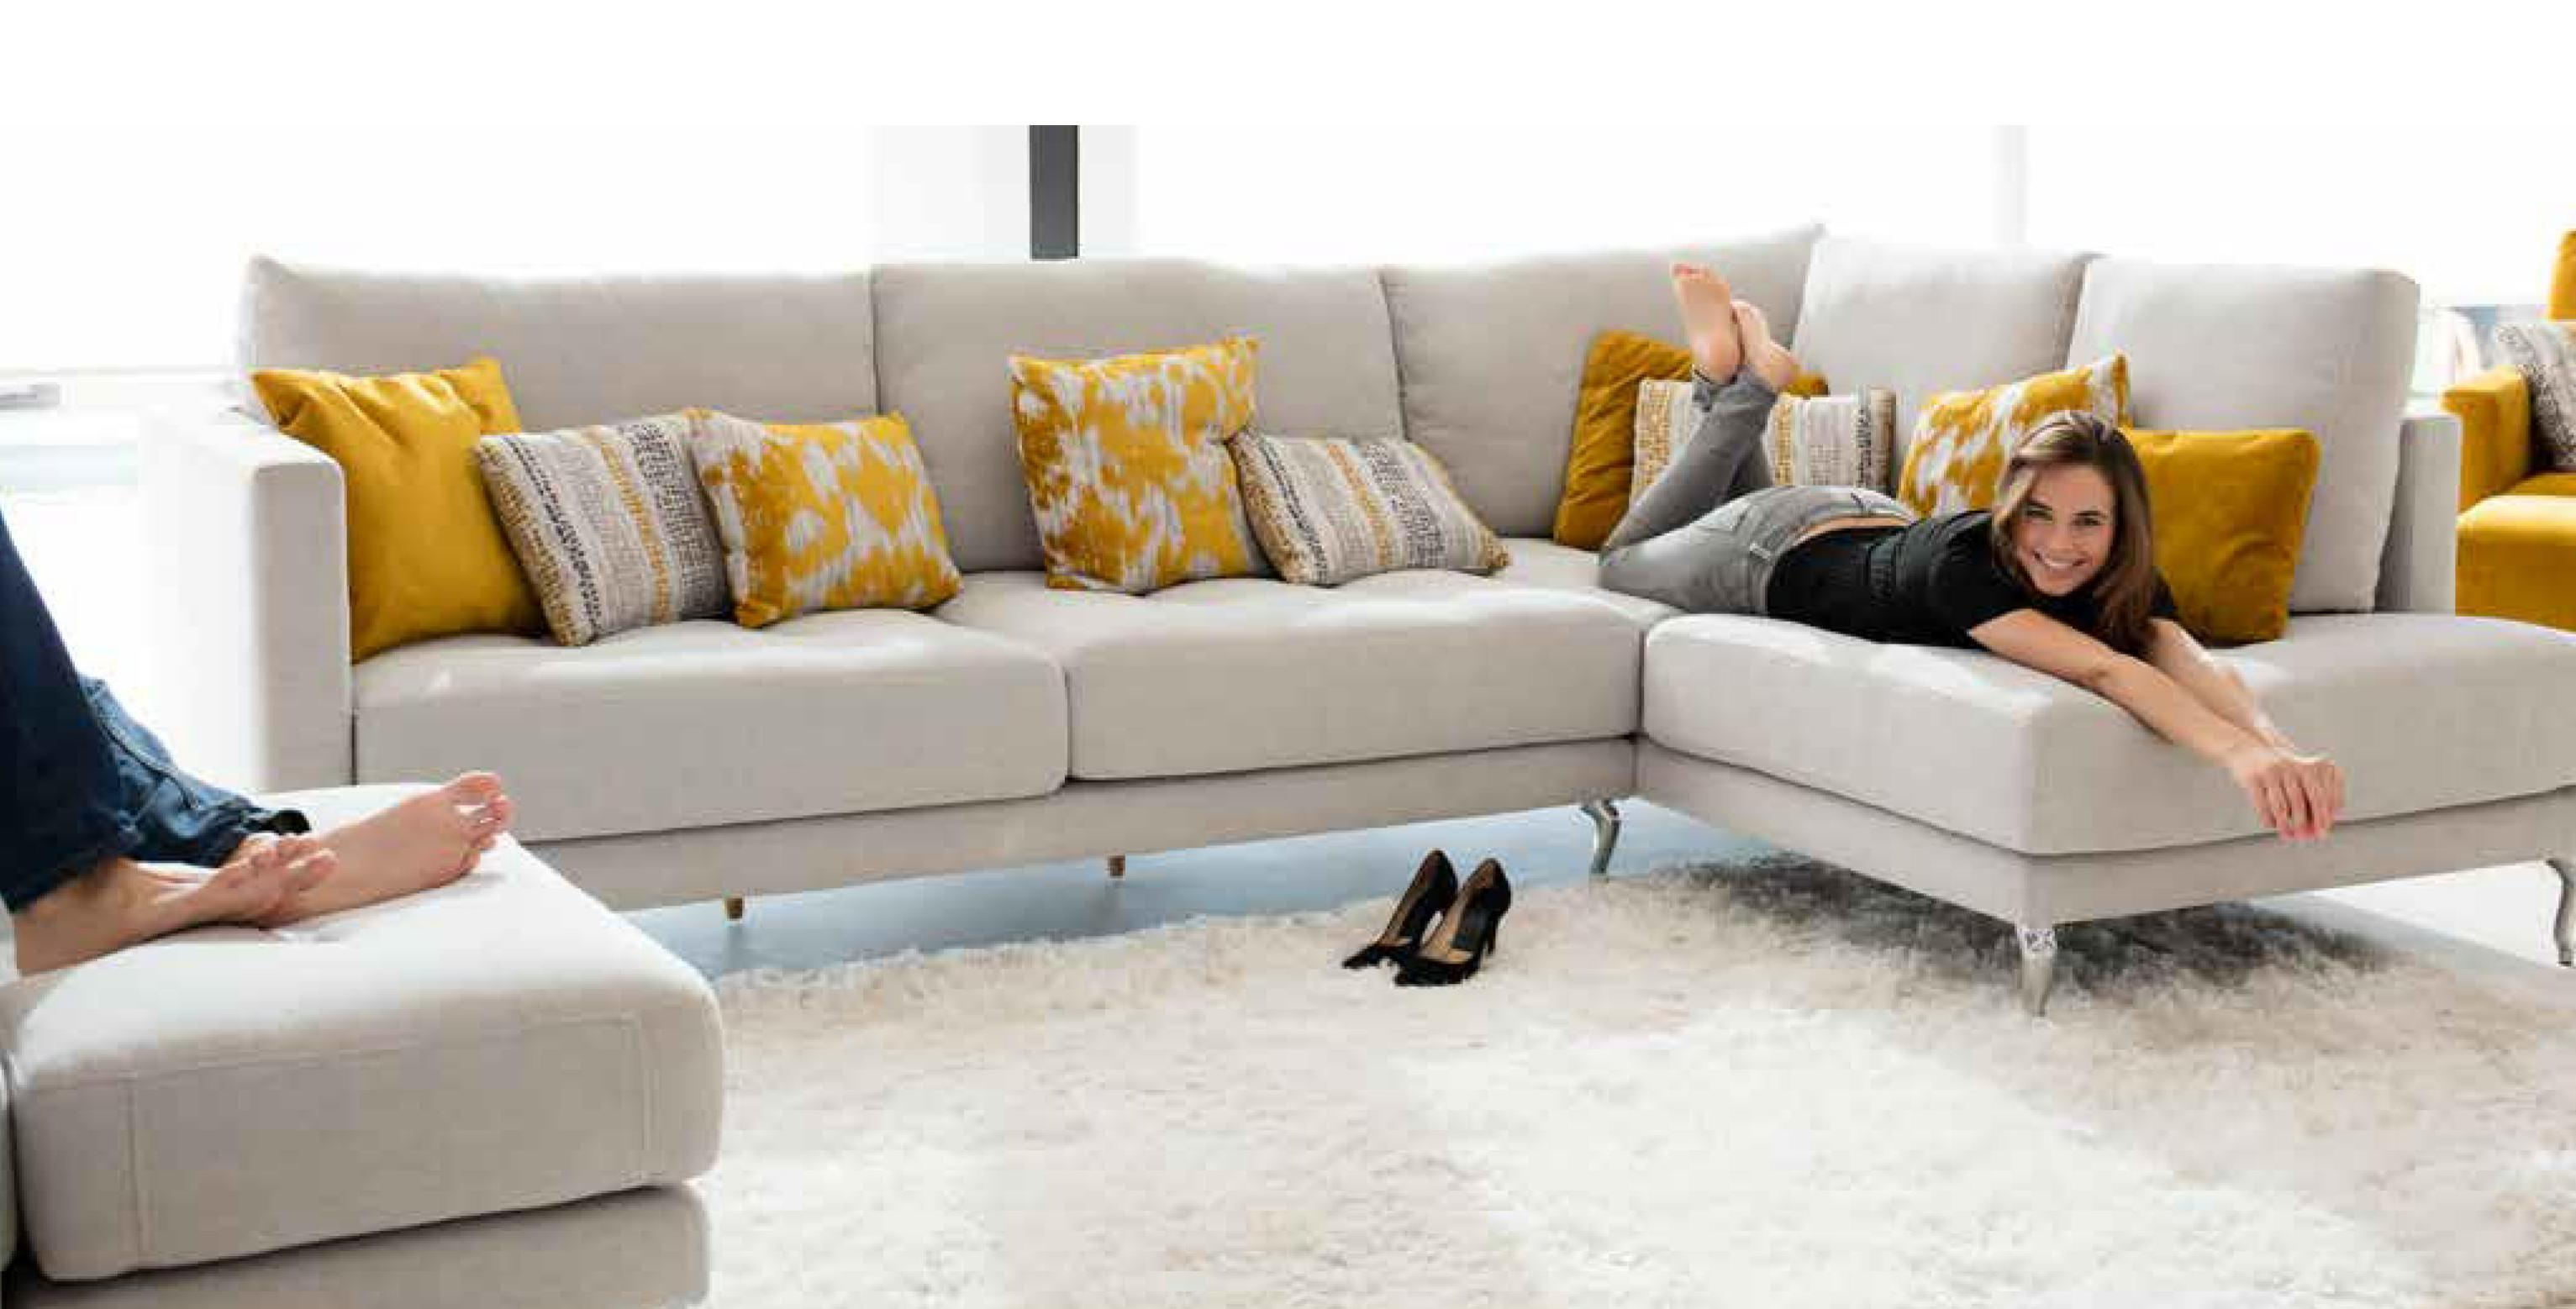 sofa fama chaiselongue rinconer Mercado del Mueble Vivarea Pinto